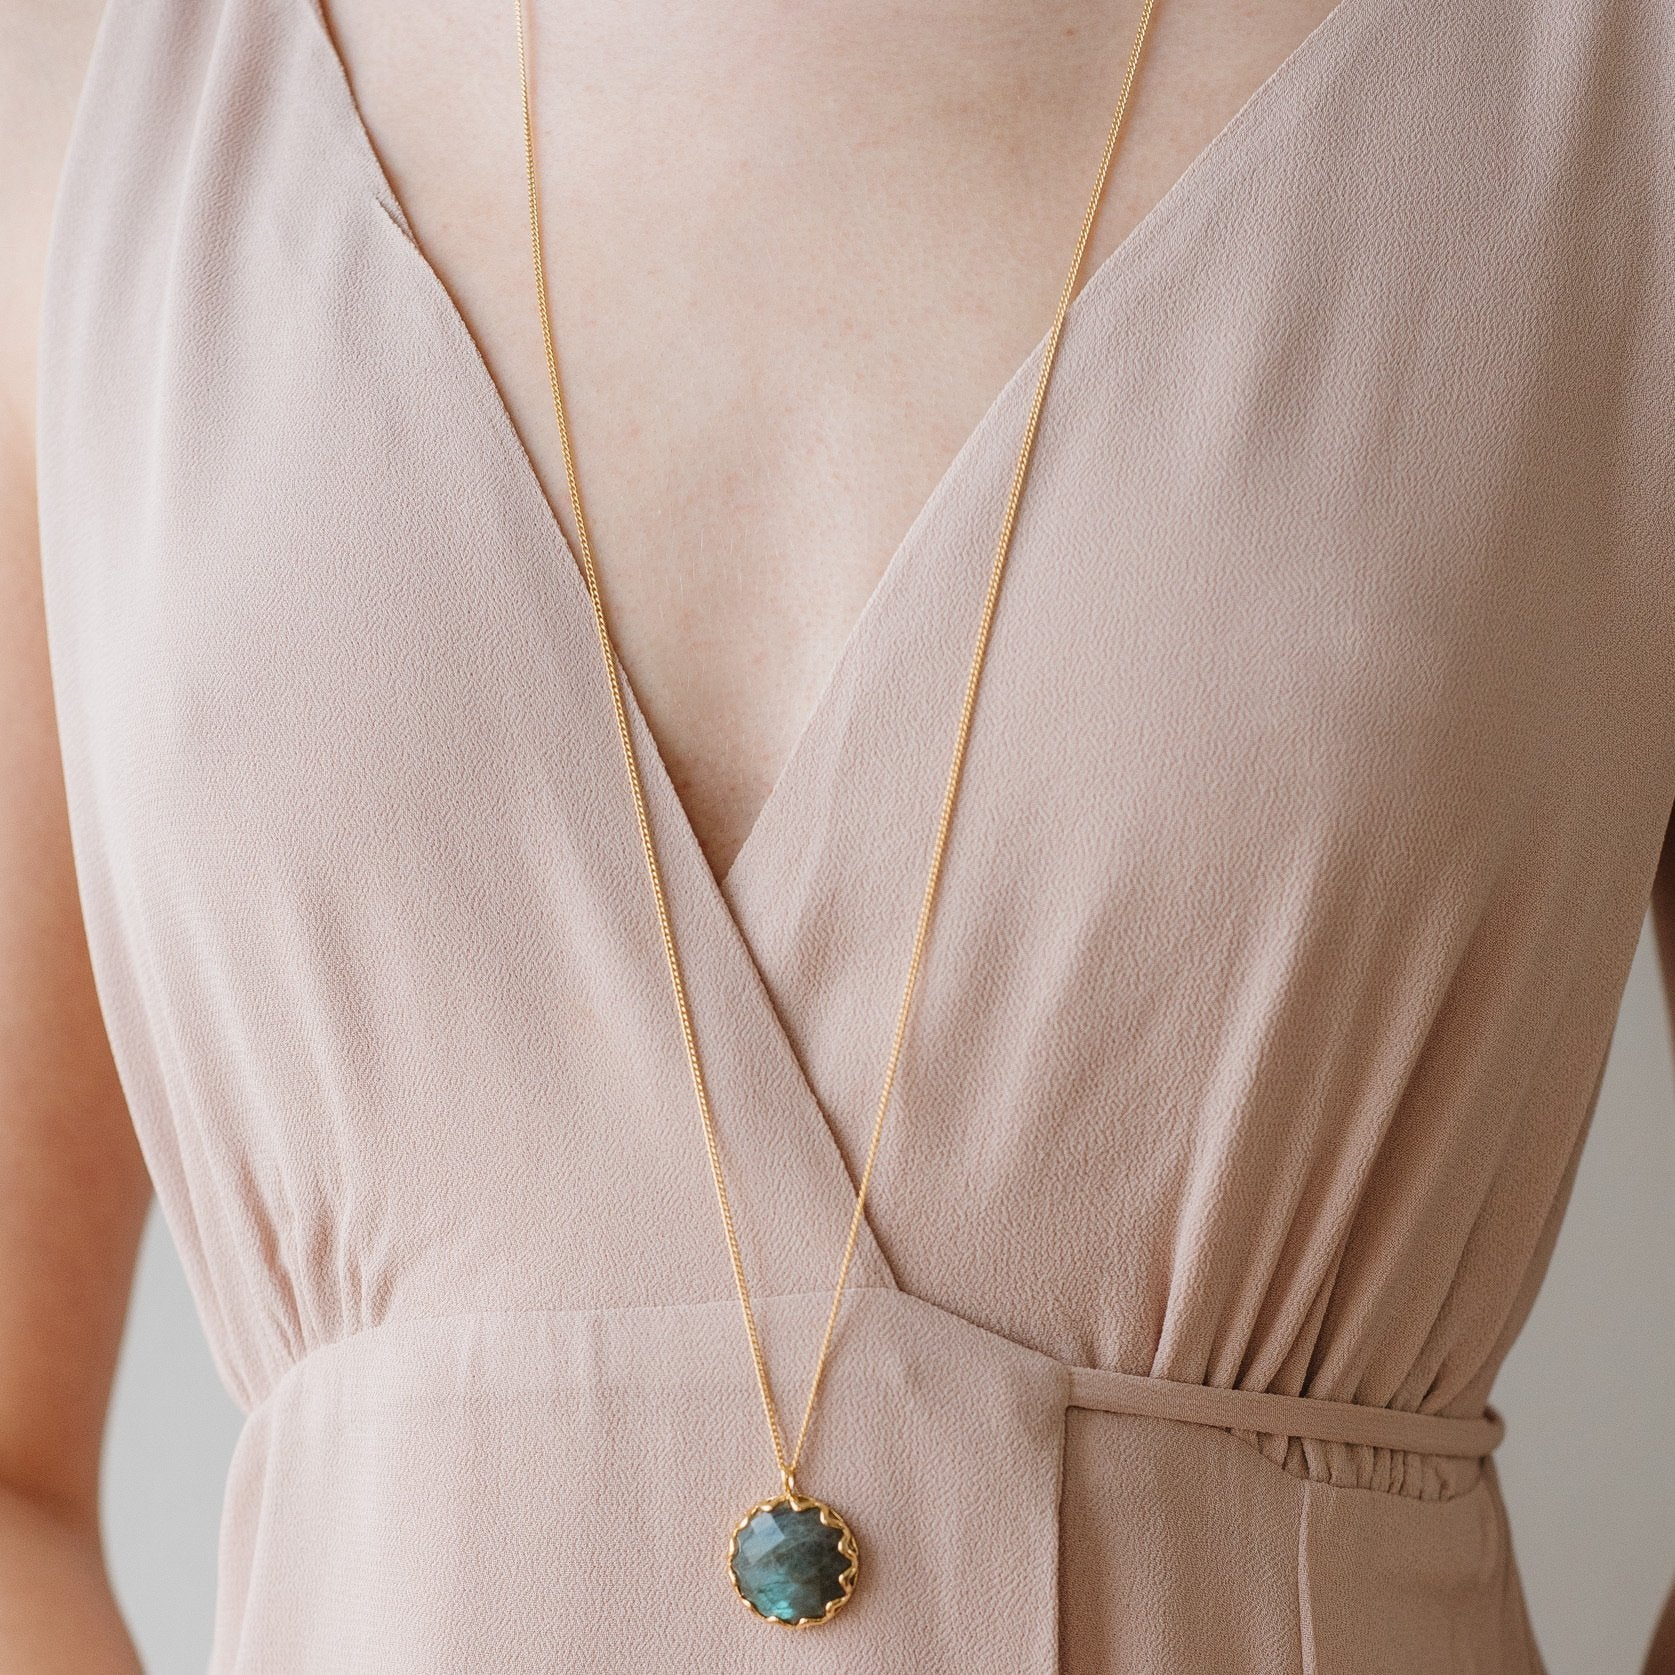 FEARLESS NECKLACE - LABRADORITE & GOLD - SO PRETTY CARA COTTER